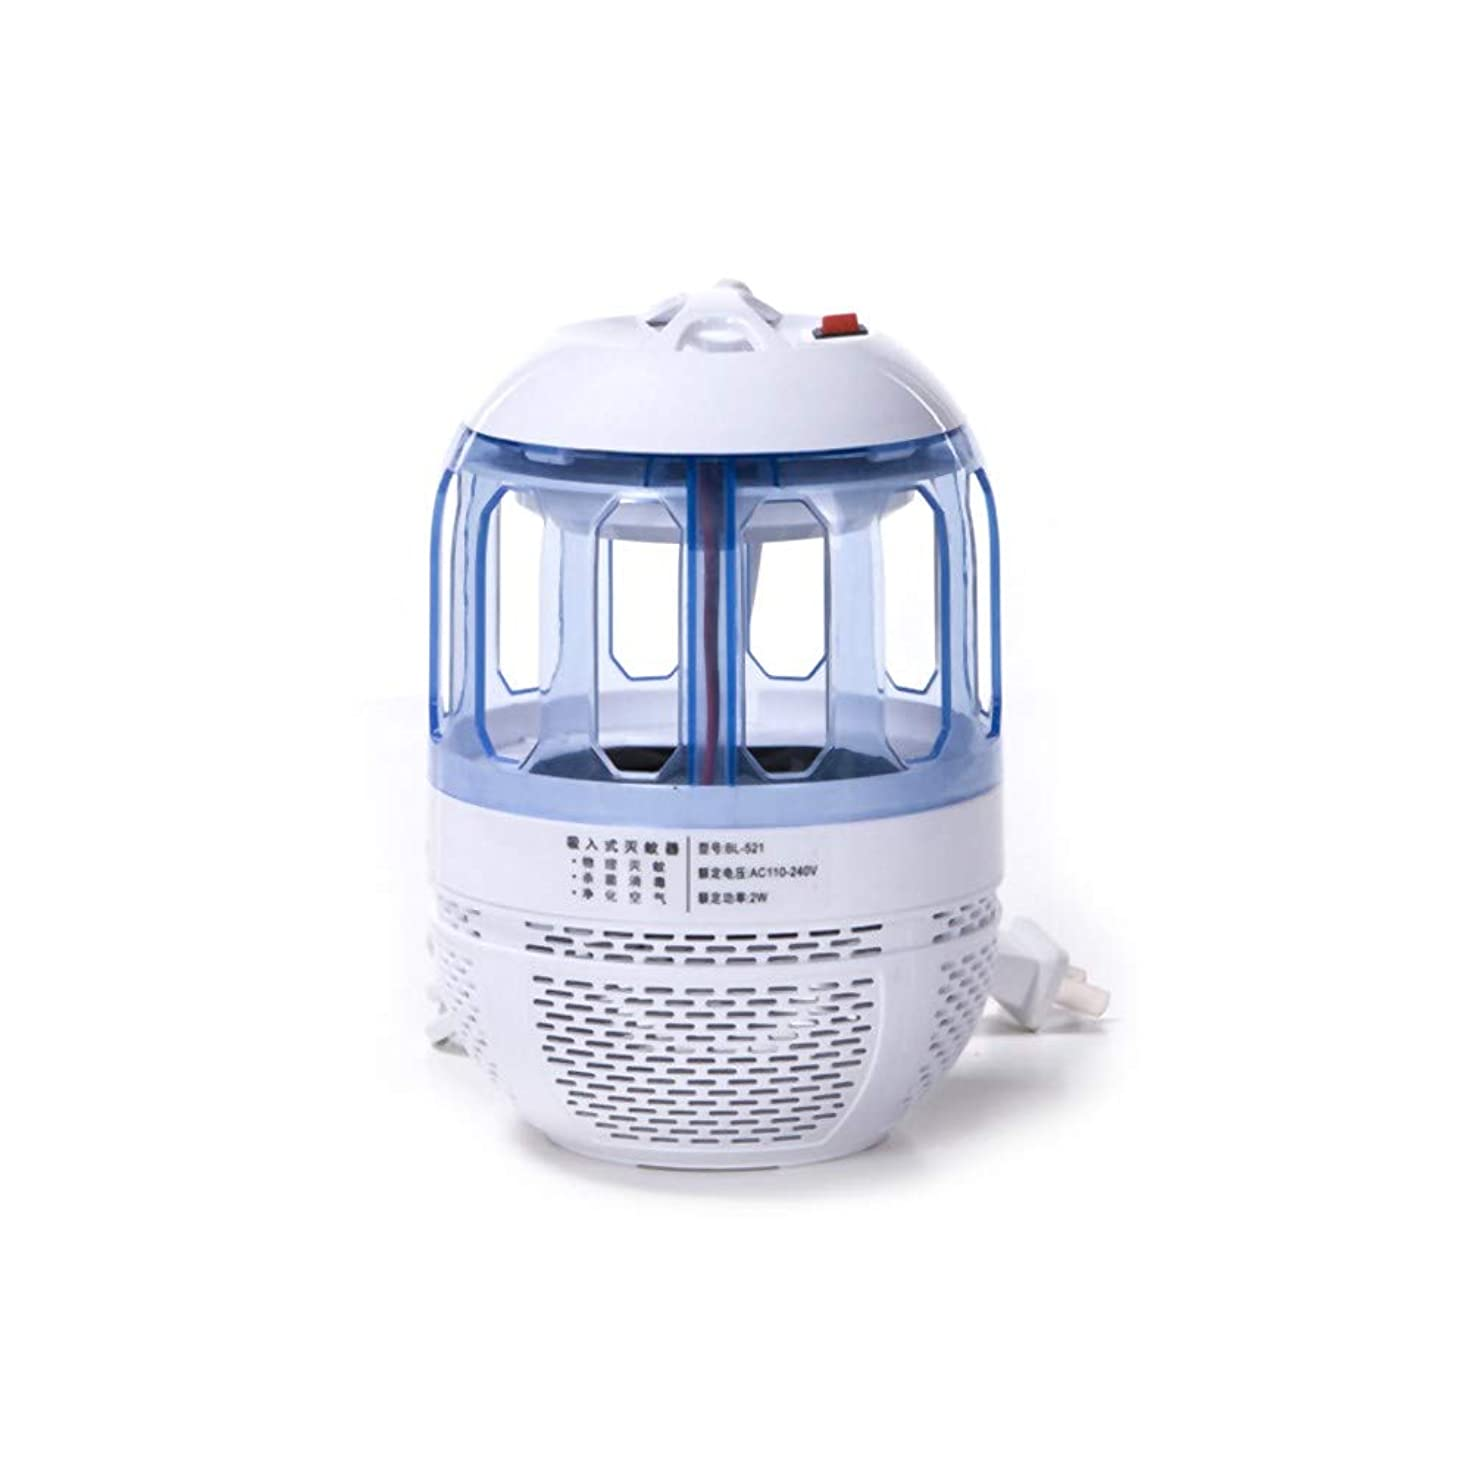 ??Ywoow?? Mosquito lamp, Mosquito Killer Light 5W Smart Optically Controlled Insect Killing Lamp